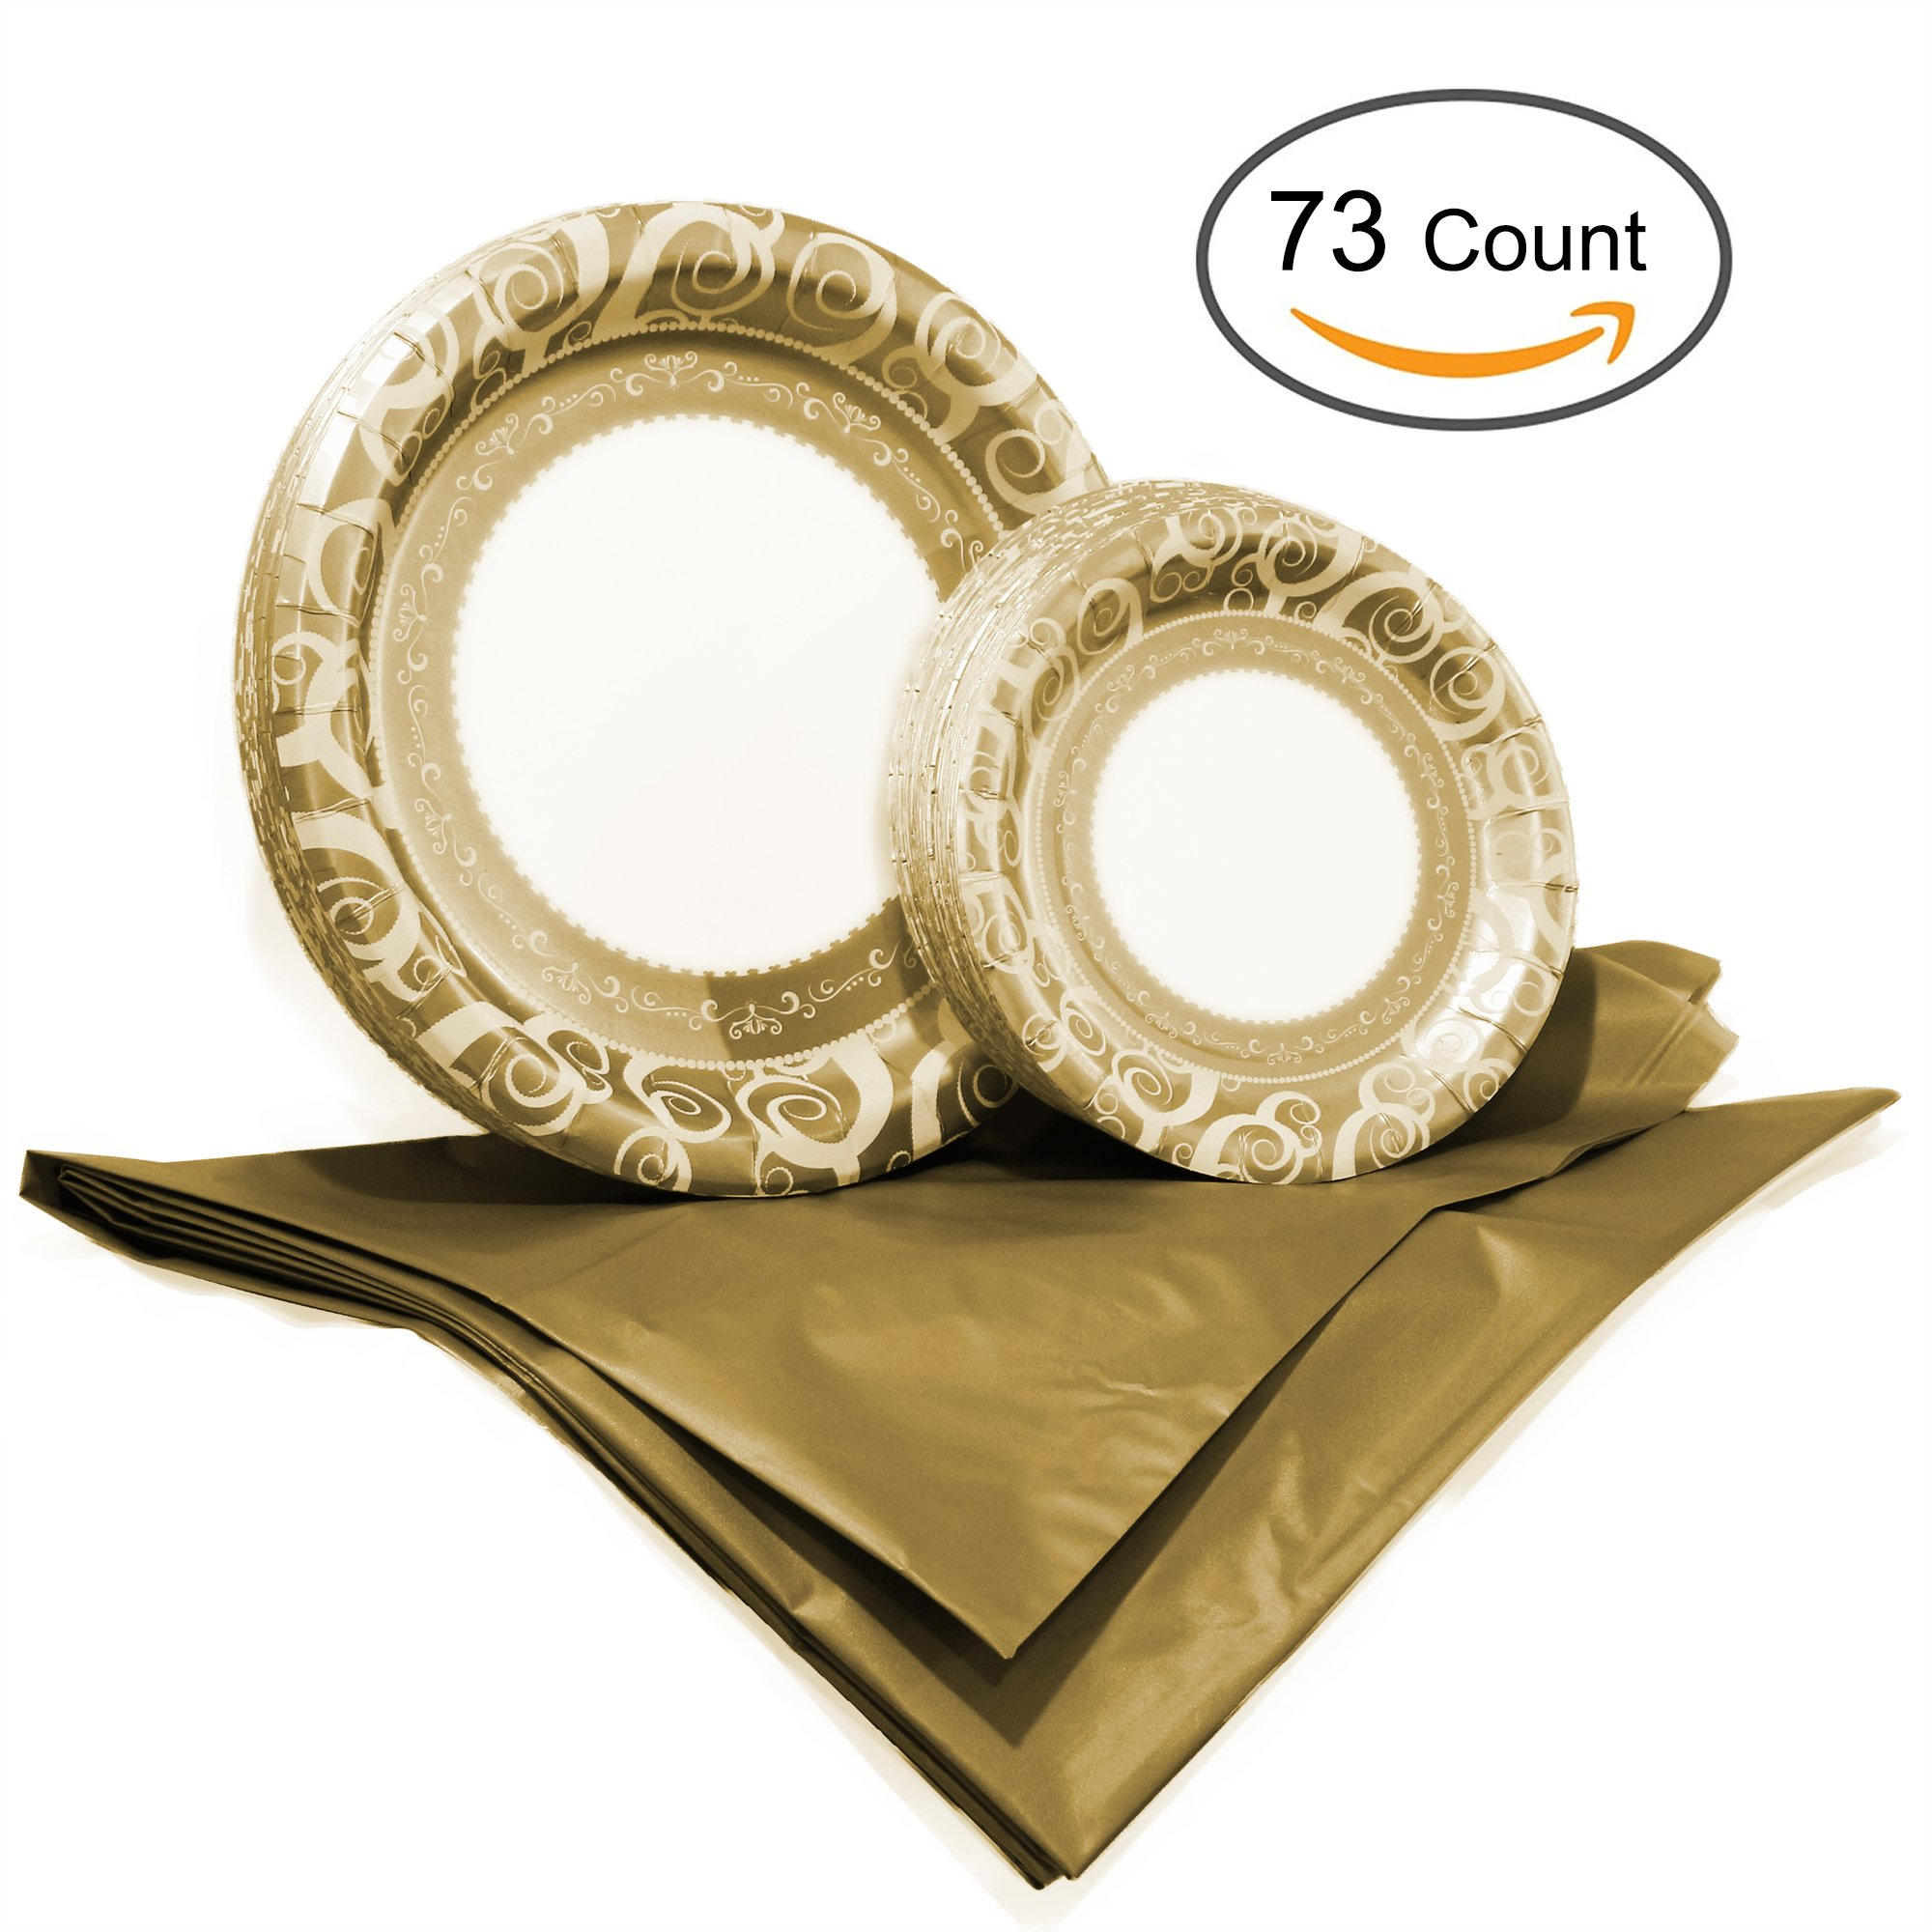 Tiger Chef Majestic Gold Disposable Plate Paper Dinnerware Set for 36 Guest, Includes 36 10-inch and 7-in Paper Plates and 1 Plastic Tablecloth 54x108-in, Party Pack Tableware, Wedding, Birthdays